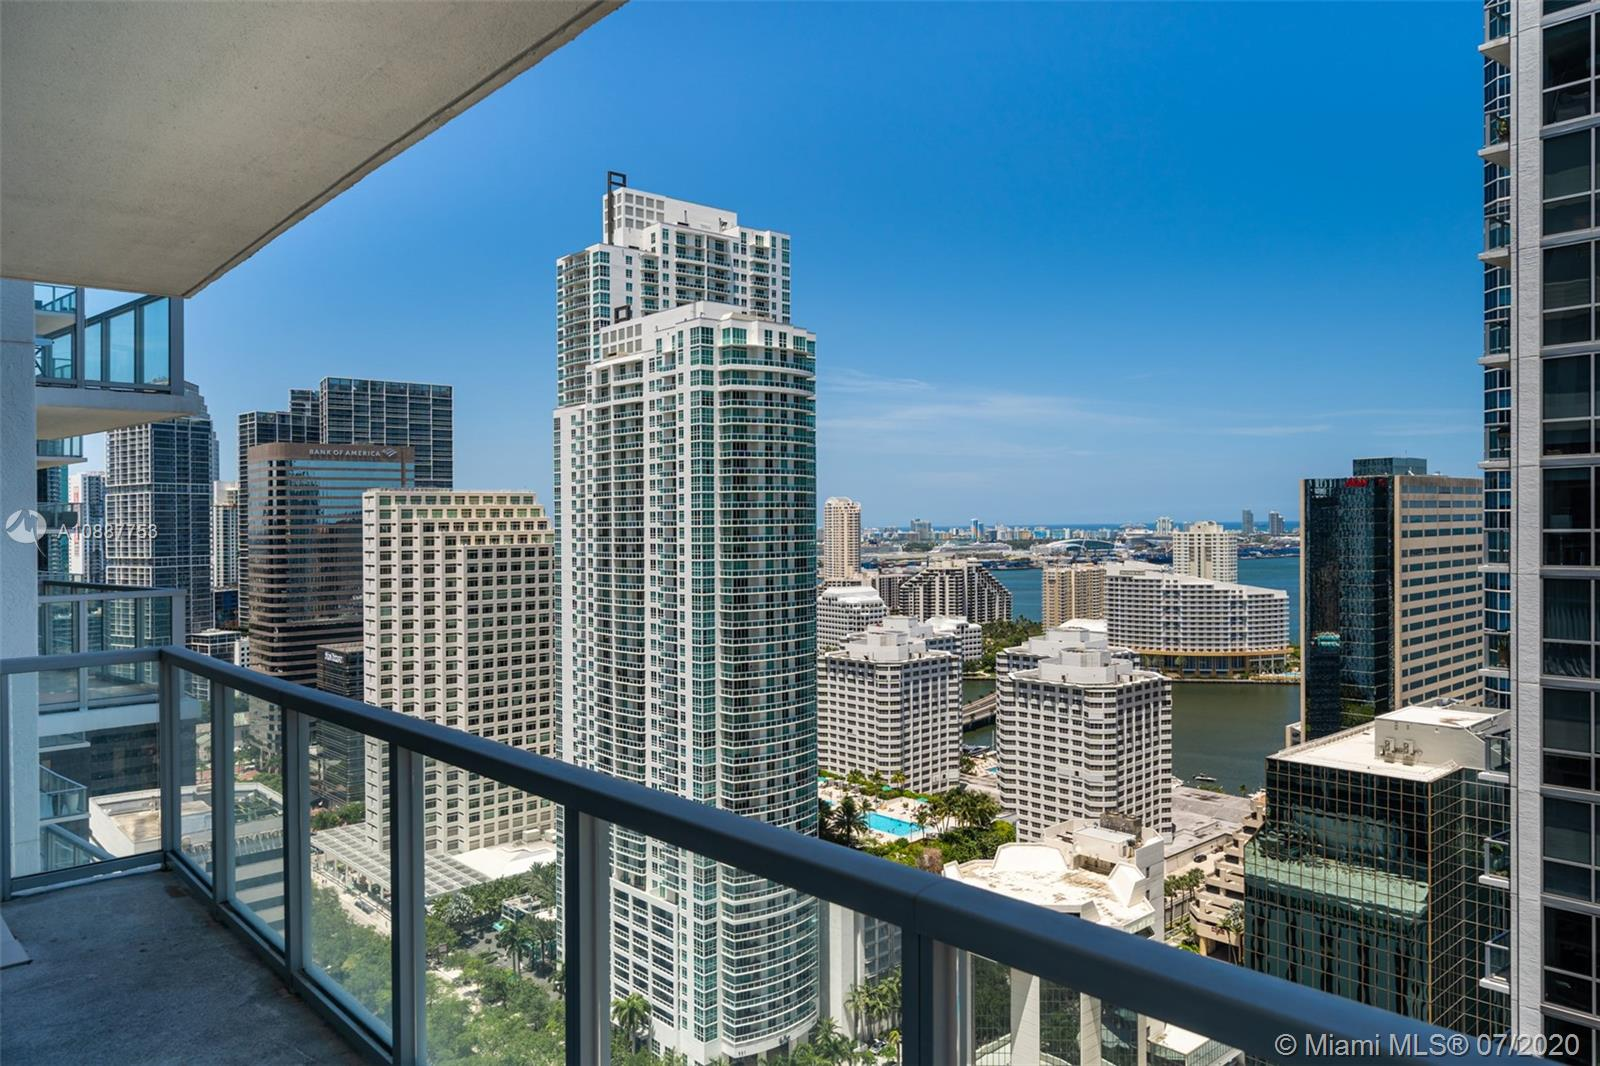 Welcome to the best value for a large 1 bed corner unit with large wrap around terrace with partial bay and fantastic skyline & sunset views located at 1050 Brickell. Features include: Brazilian cherry wood flooring throughout, Bosch & kitchen aid stainless steal appliances in your huge chef kitchen with tons of cabinet space, upgraded full washer/dryer, floor to ceiling windows in the living room with fantastic skyline views. The master suite is generously distributed with natural light as well as upgraded blackout blinds. Have access to your huge custom built walk in closet for tons of storage. Your master bath retreat includes a tub/shower as well as marble flooring throughout the bathroom. Walk directly into Mary Brickell Village to shops & restaurants. Steps from Brickell City Centre.